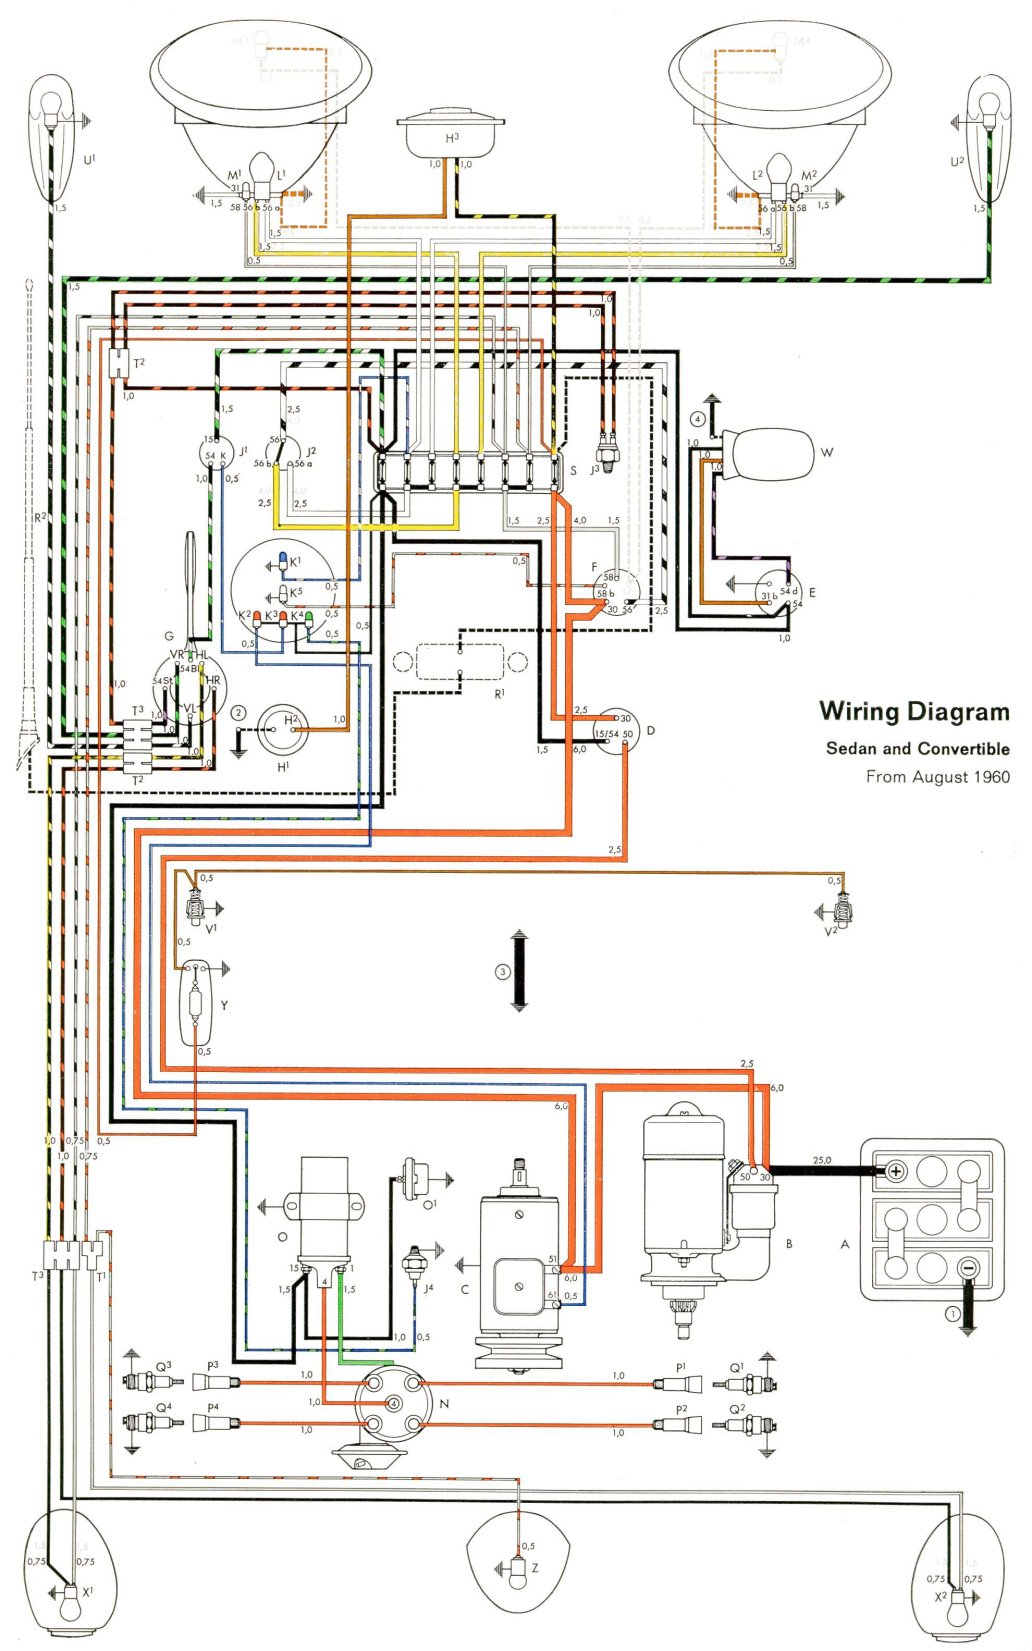 bug_61 1961 beetle wiring diagram thegoldenbug com vw bug wiring diagram at gsmx.co